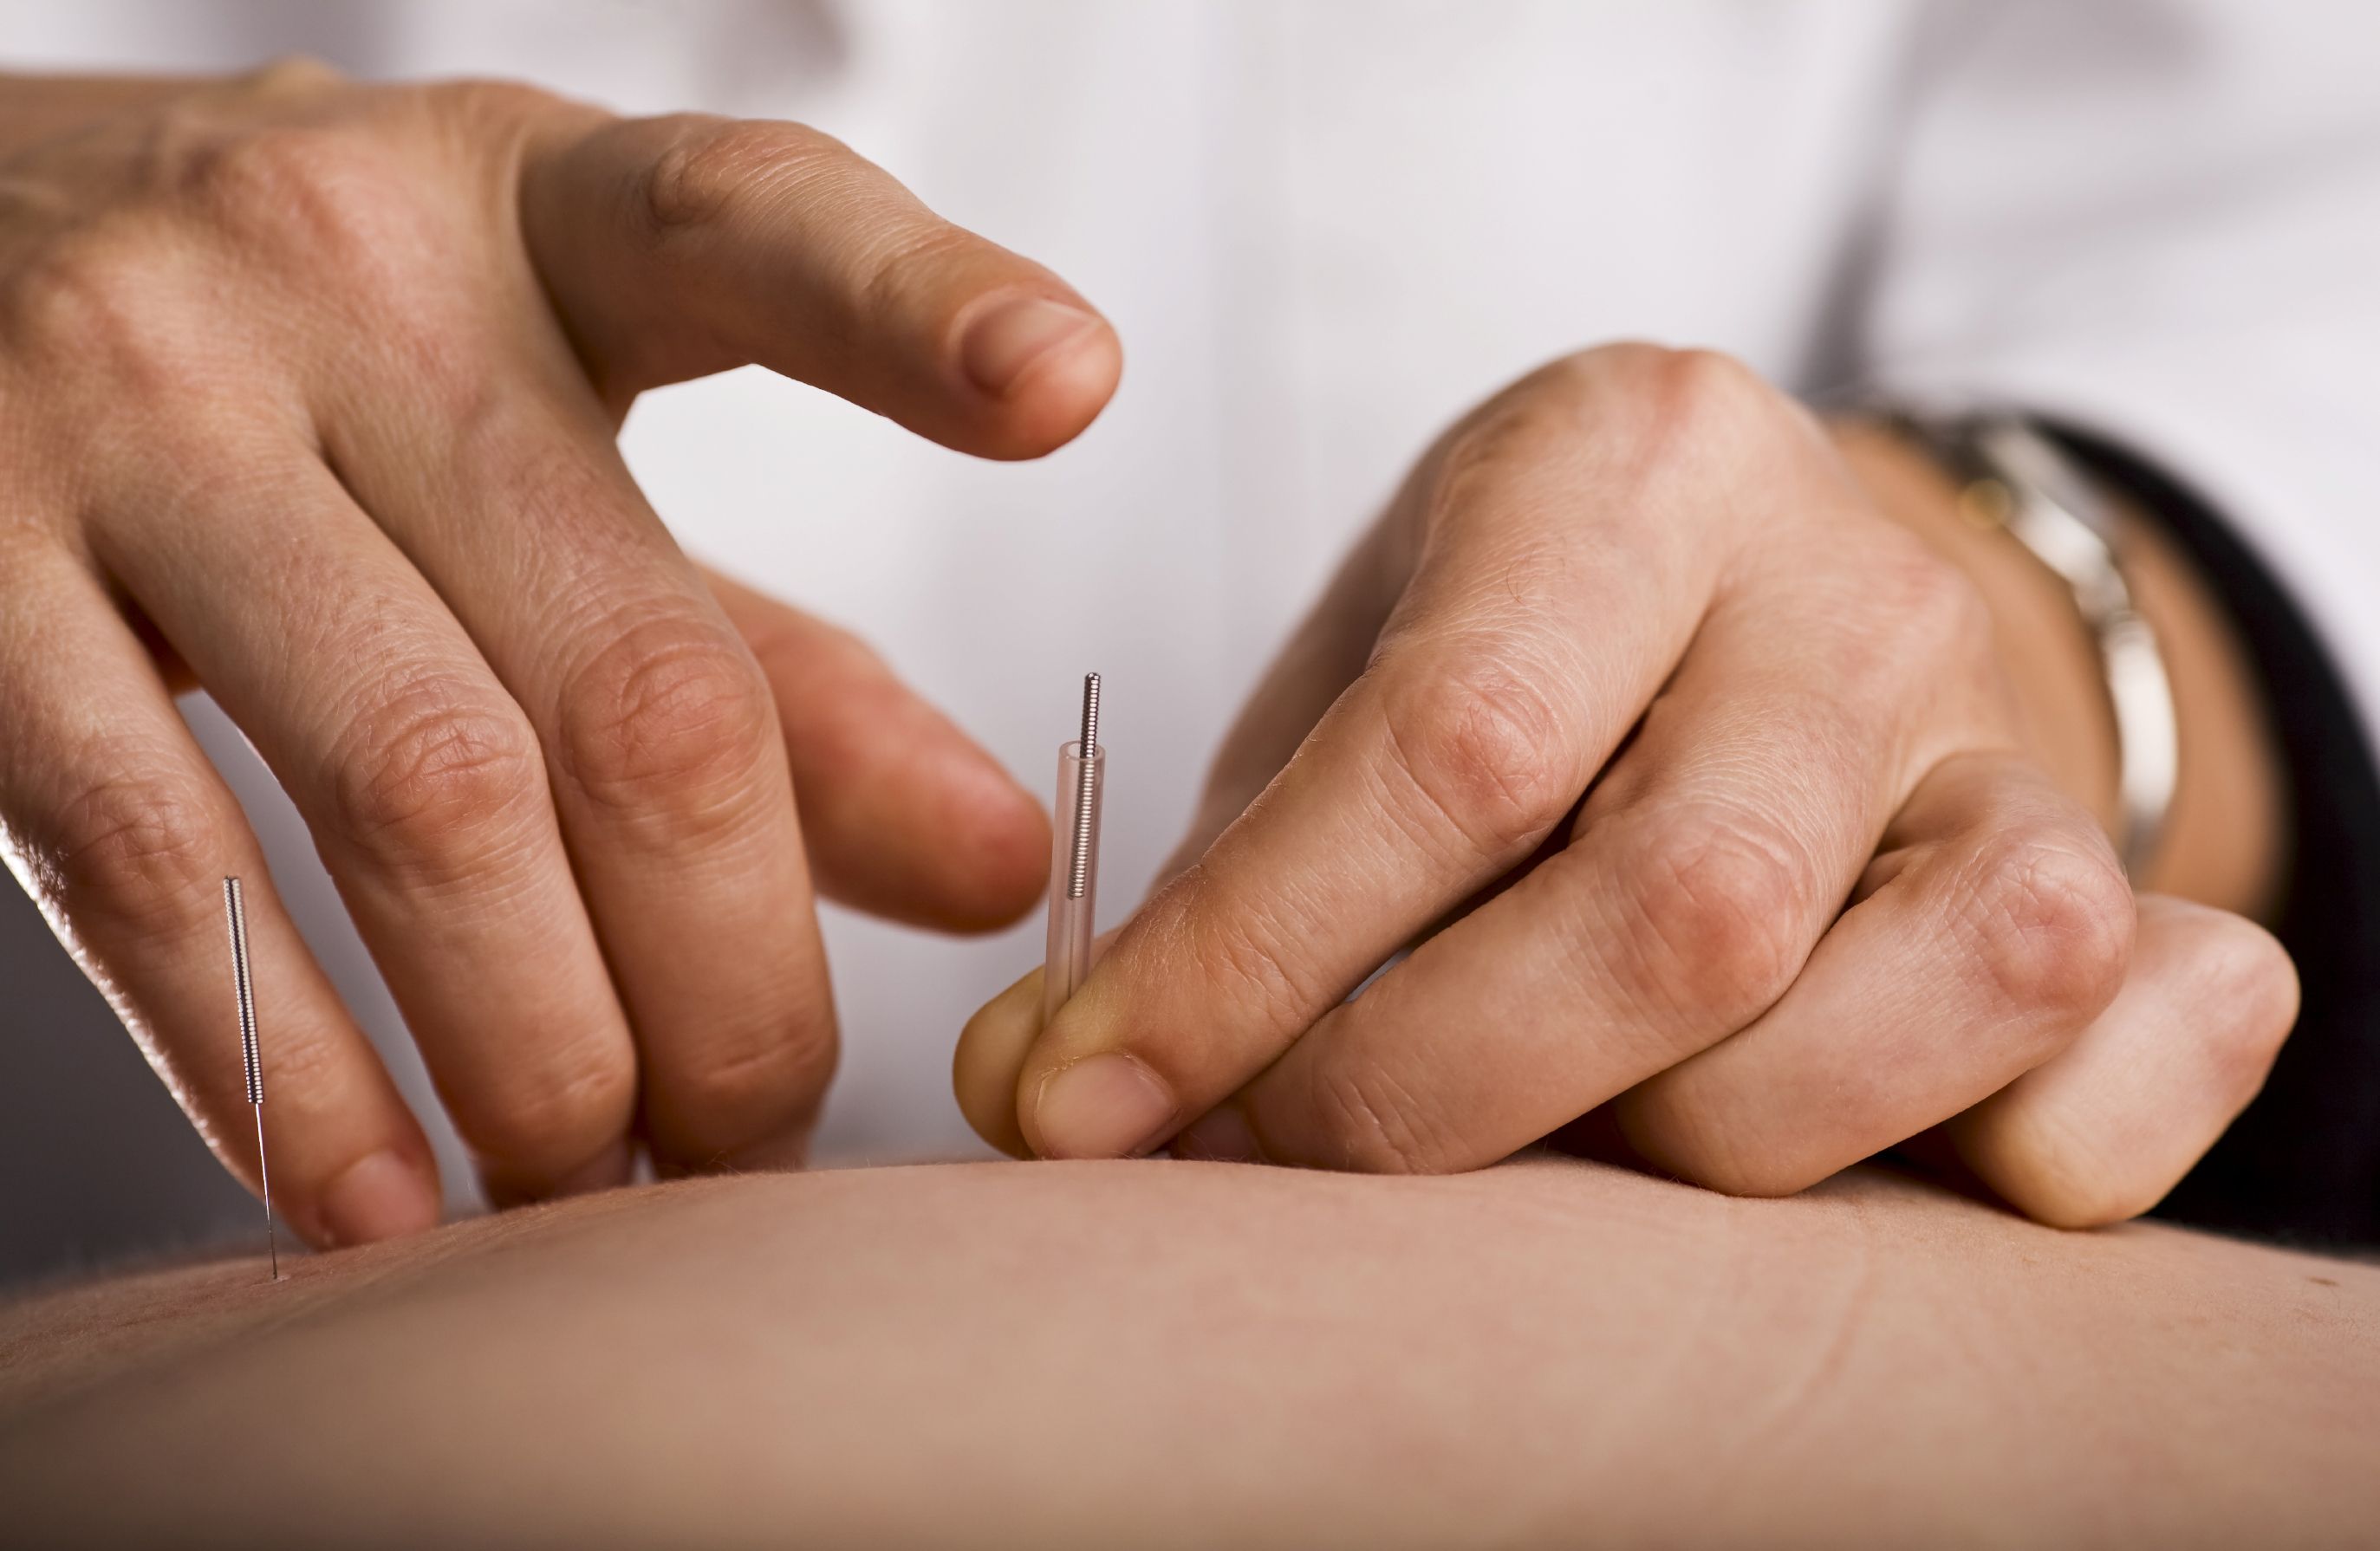 acupuncturist in glendale performing acupuncture on patient